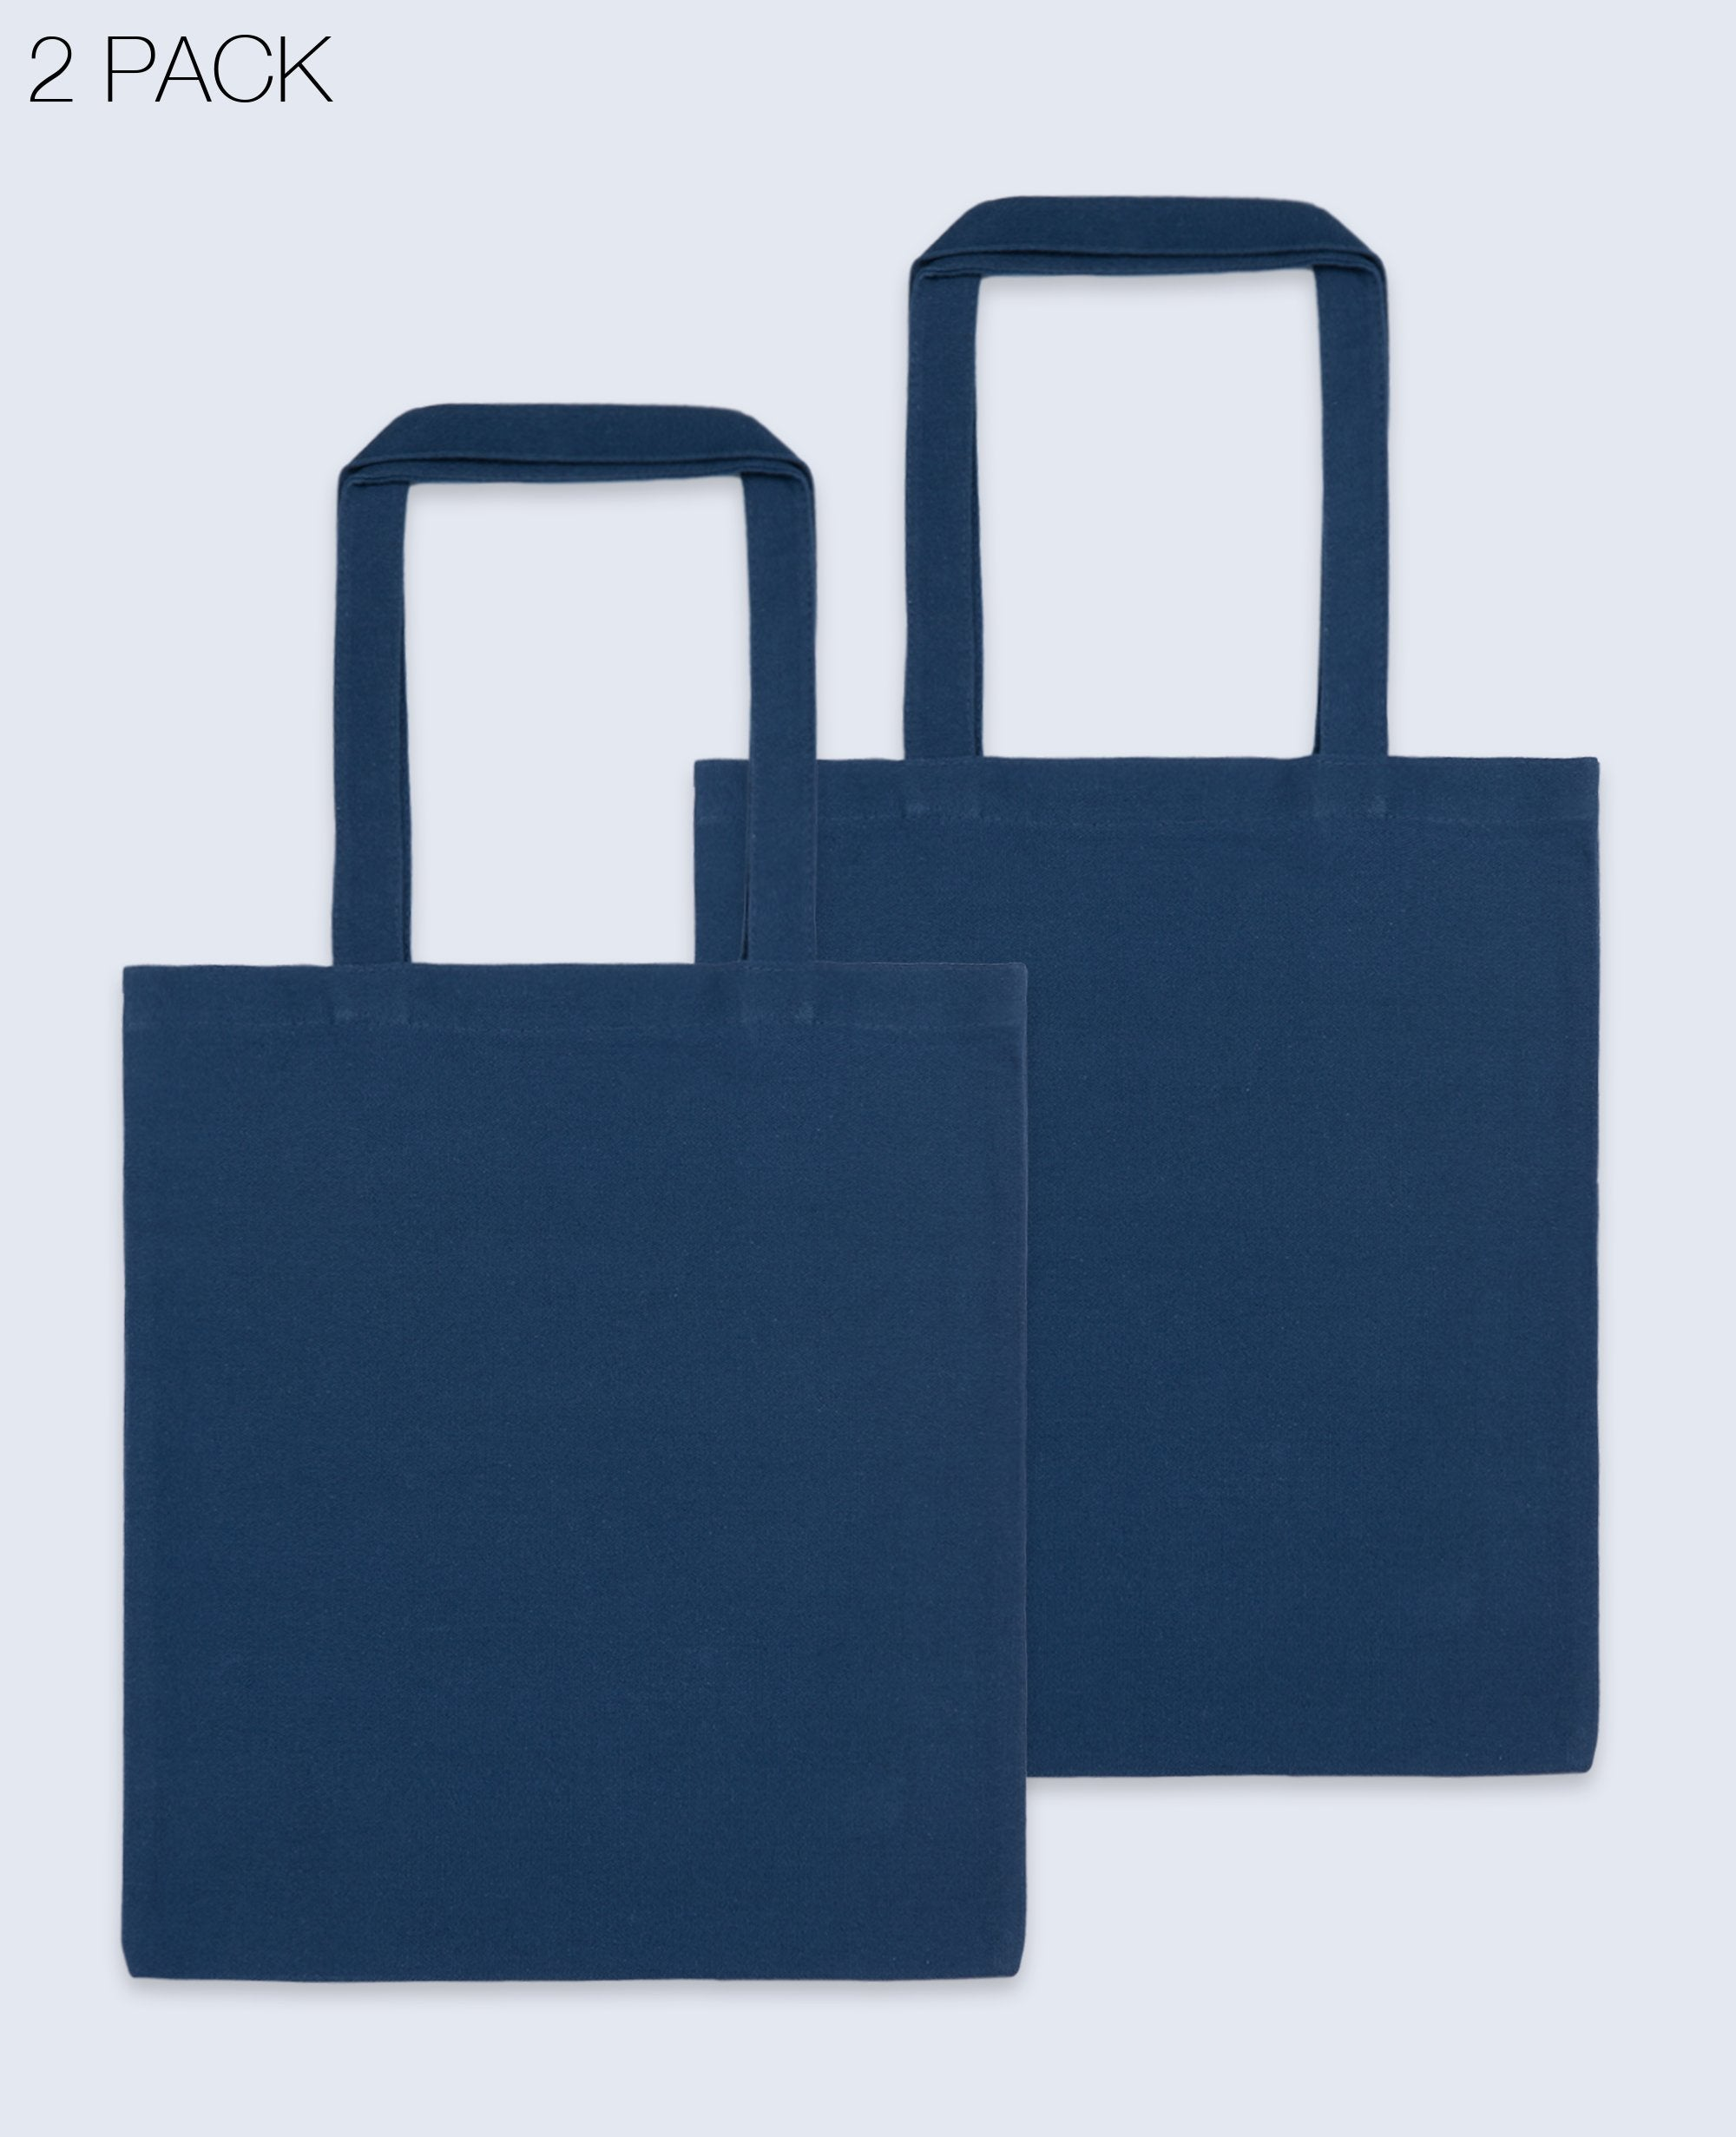 Long Handle Tote bag in Navy 2 pack - Tote bags - BRANMA - BRANMA